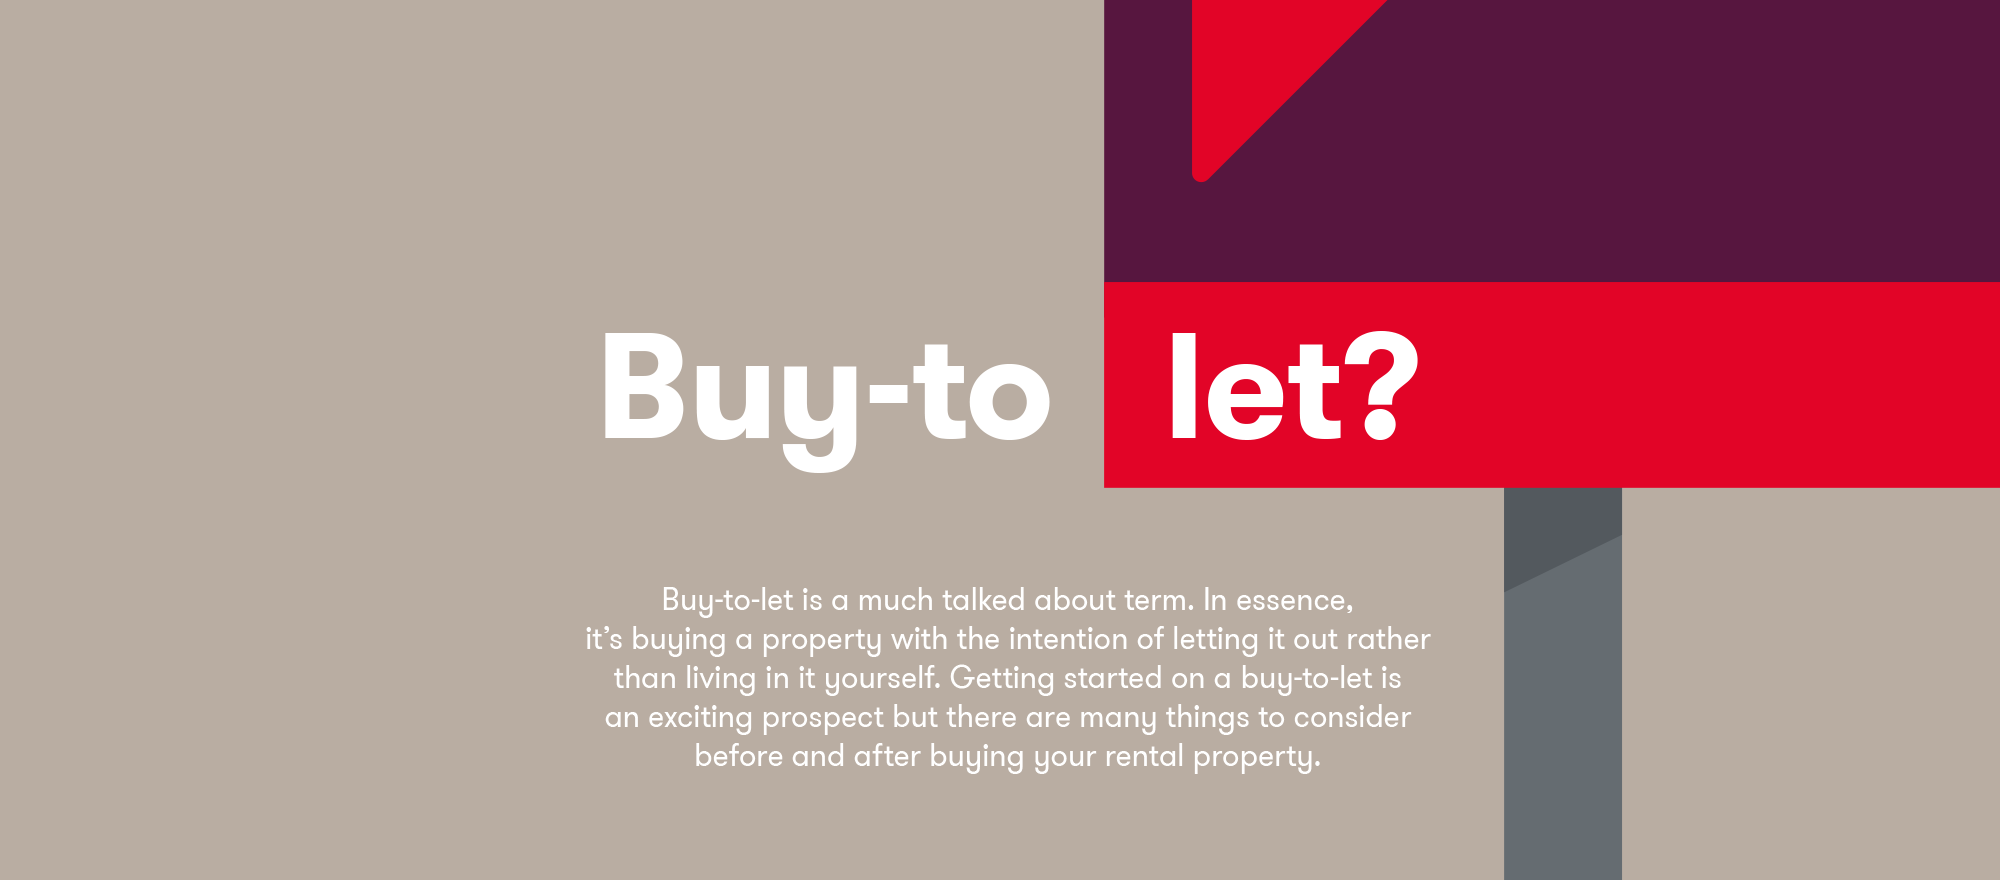 Buy-to-let?